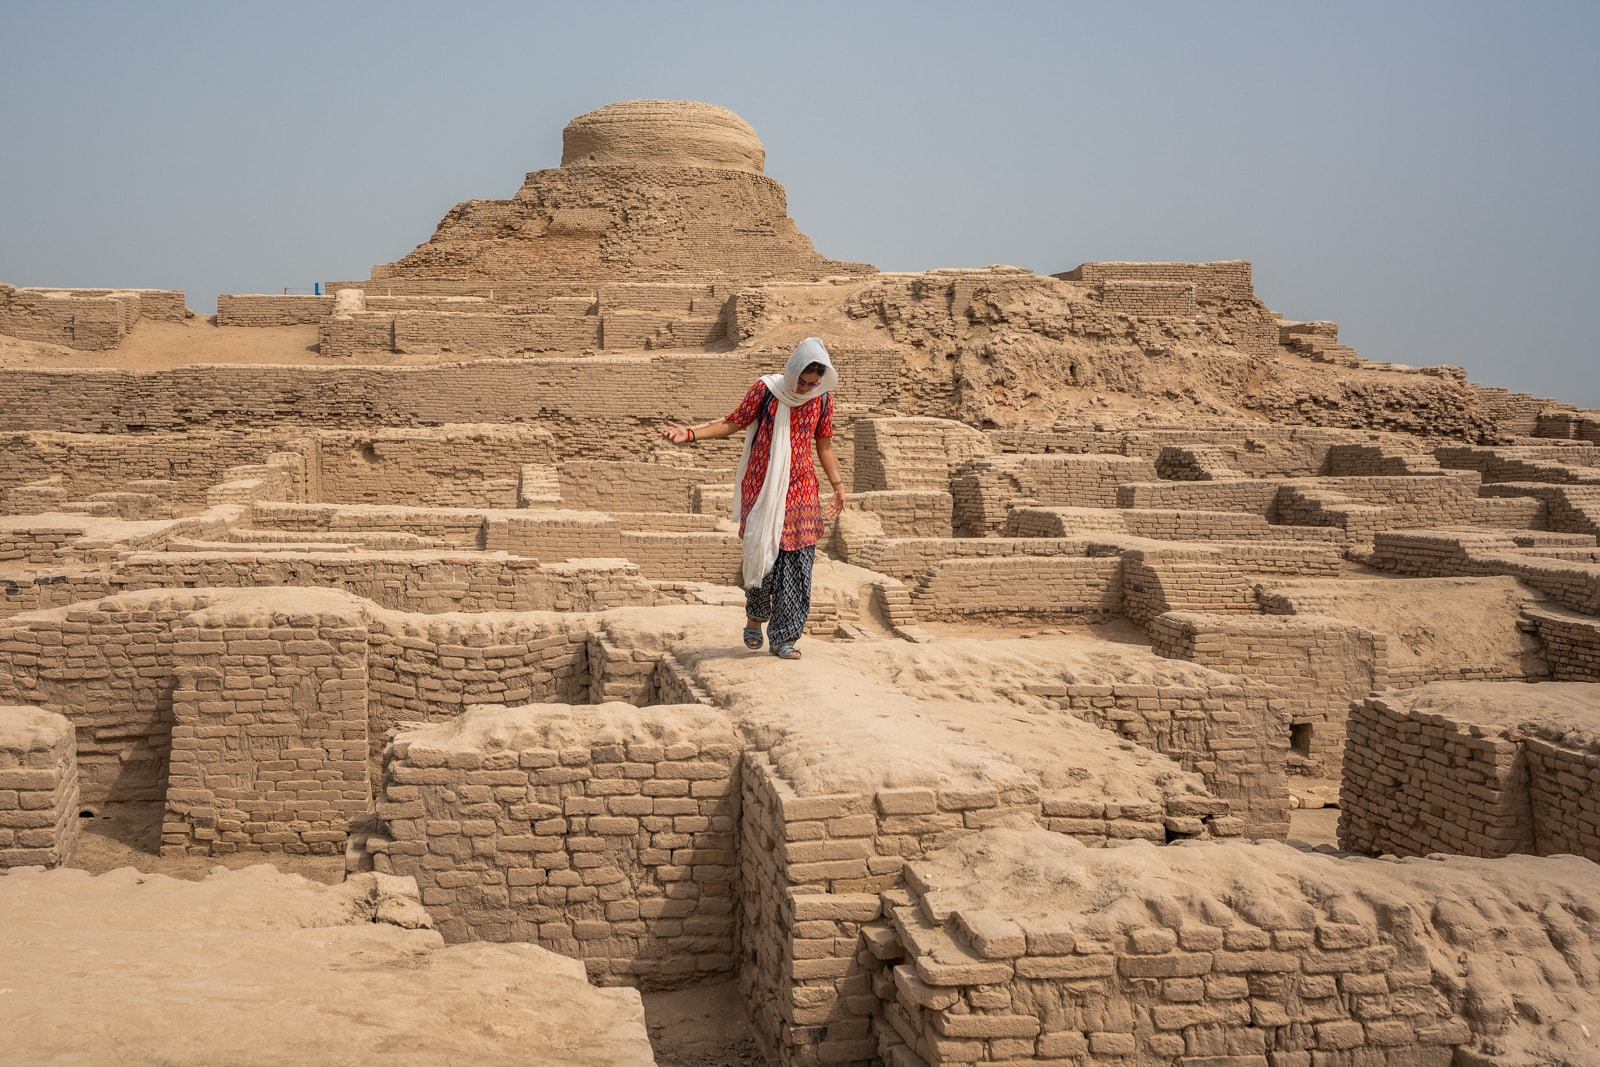 Sindh travel guide - Alex walking on the ruins in Moenjo Daro - Lost With Purpose travel blog